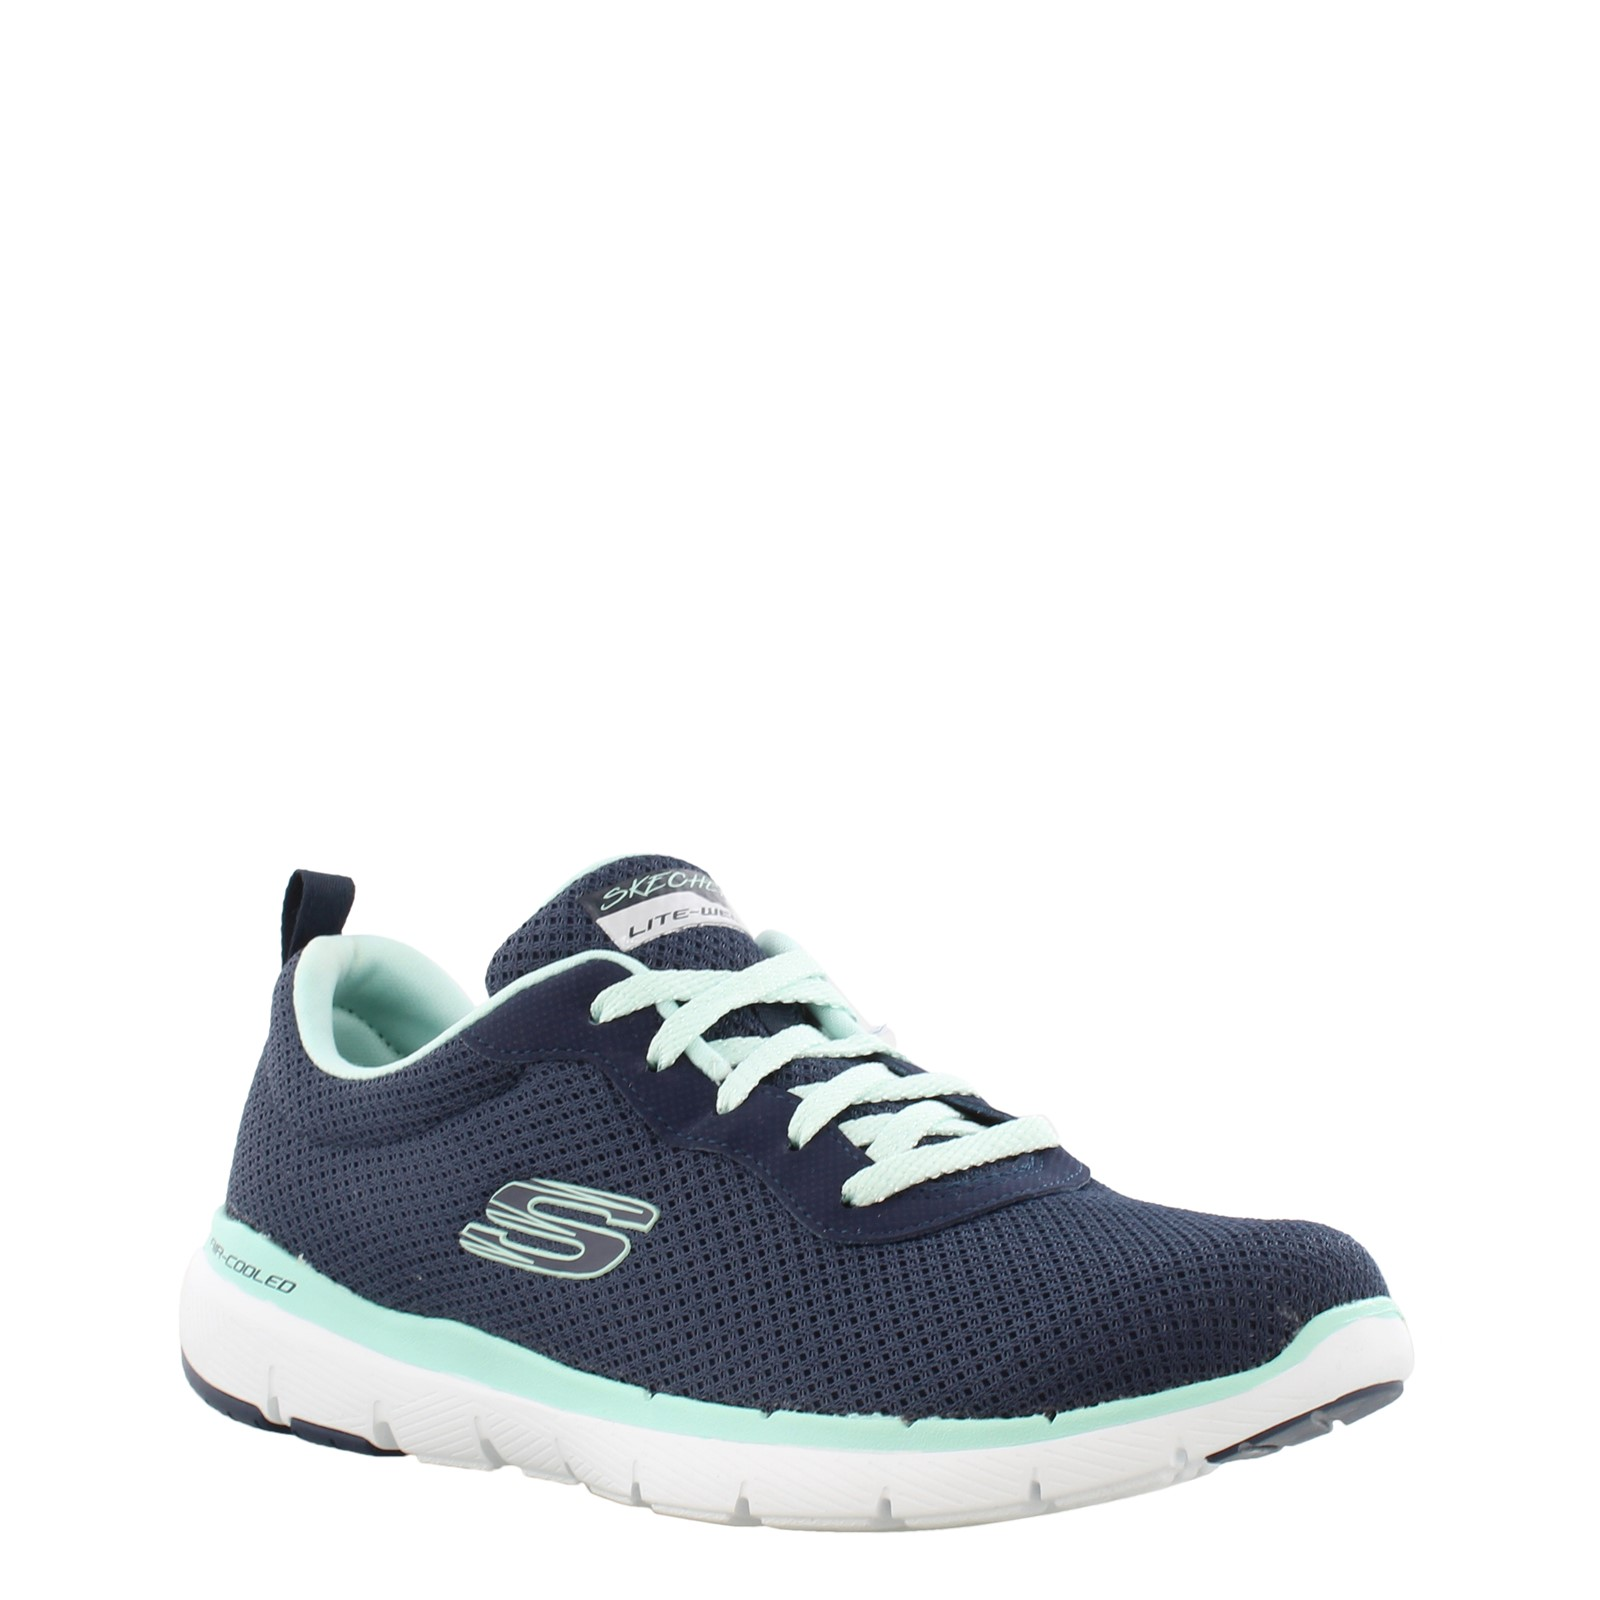 ab50a9f9 Home; Women's Skechers, Flex Appeal 3.0 - First Insight Shoes. Previous